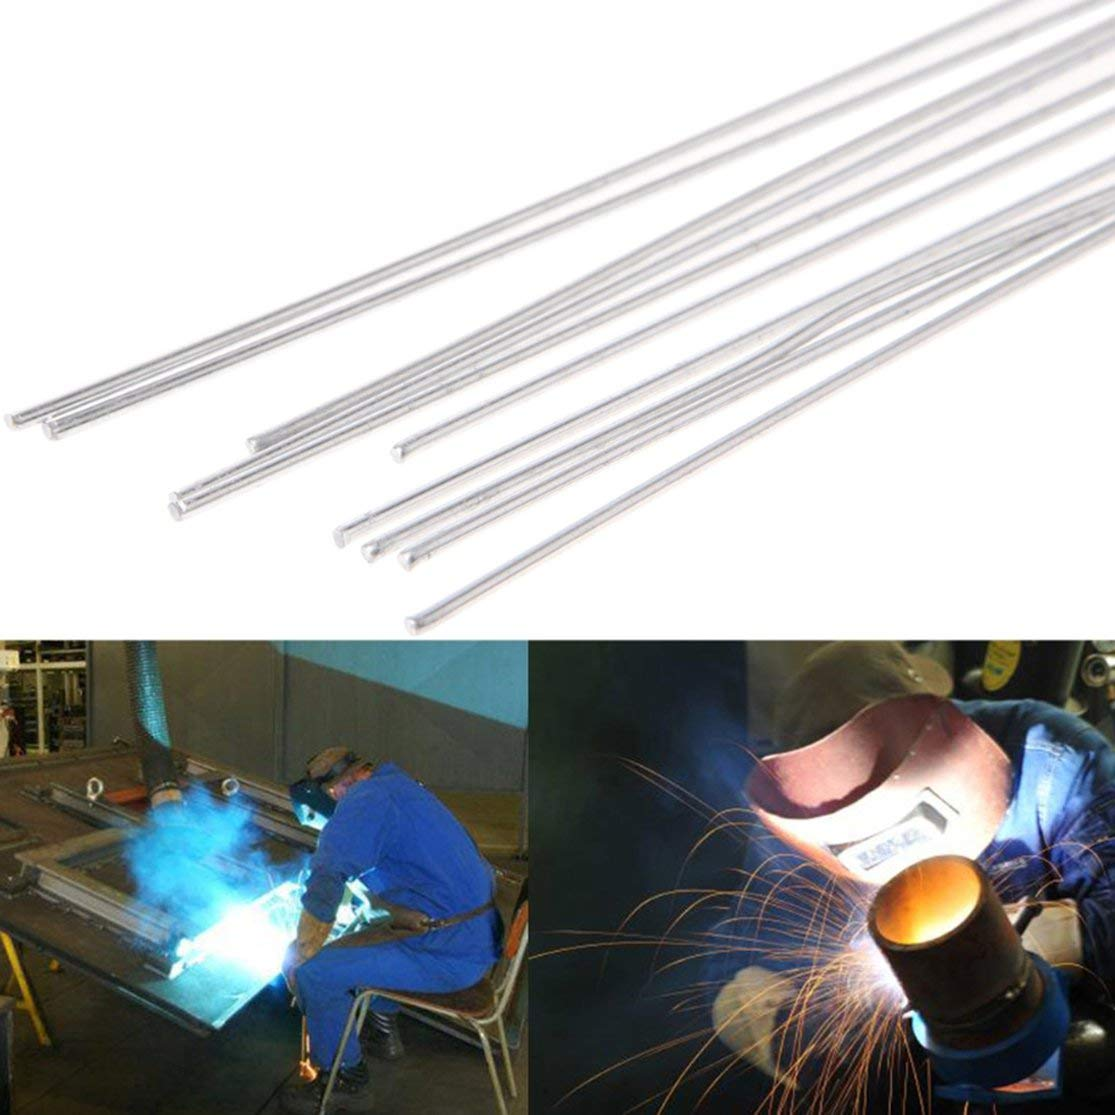 3.2x230mm Metal Aluminum Magnesium Silver Electrode Welding Rod Flux Cored Wire Brazing Stick Soldering Tool